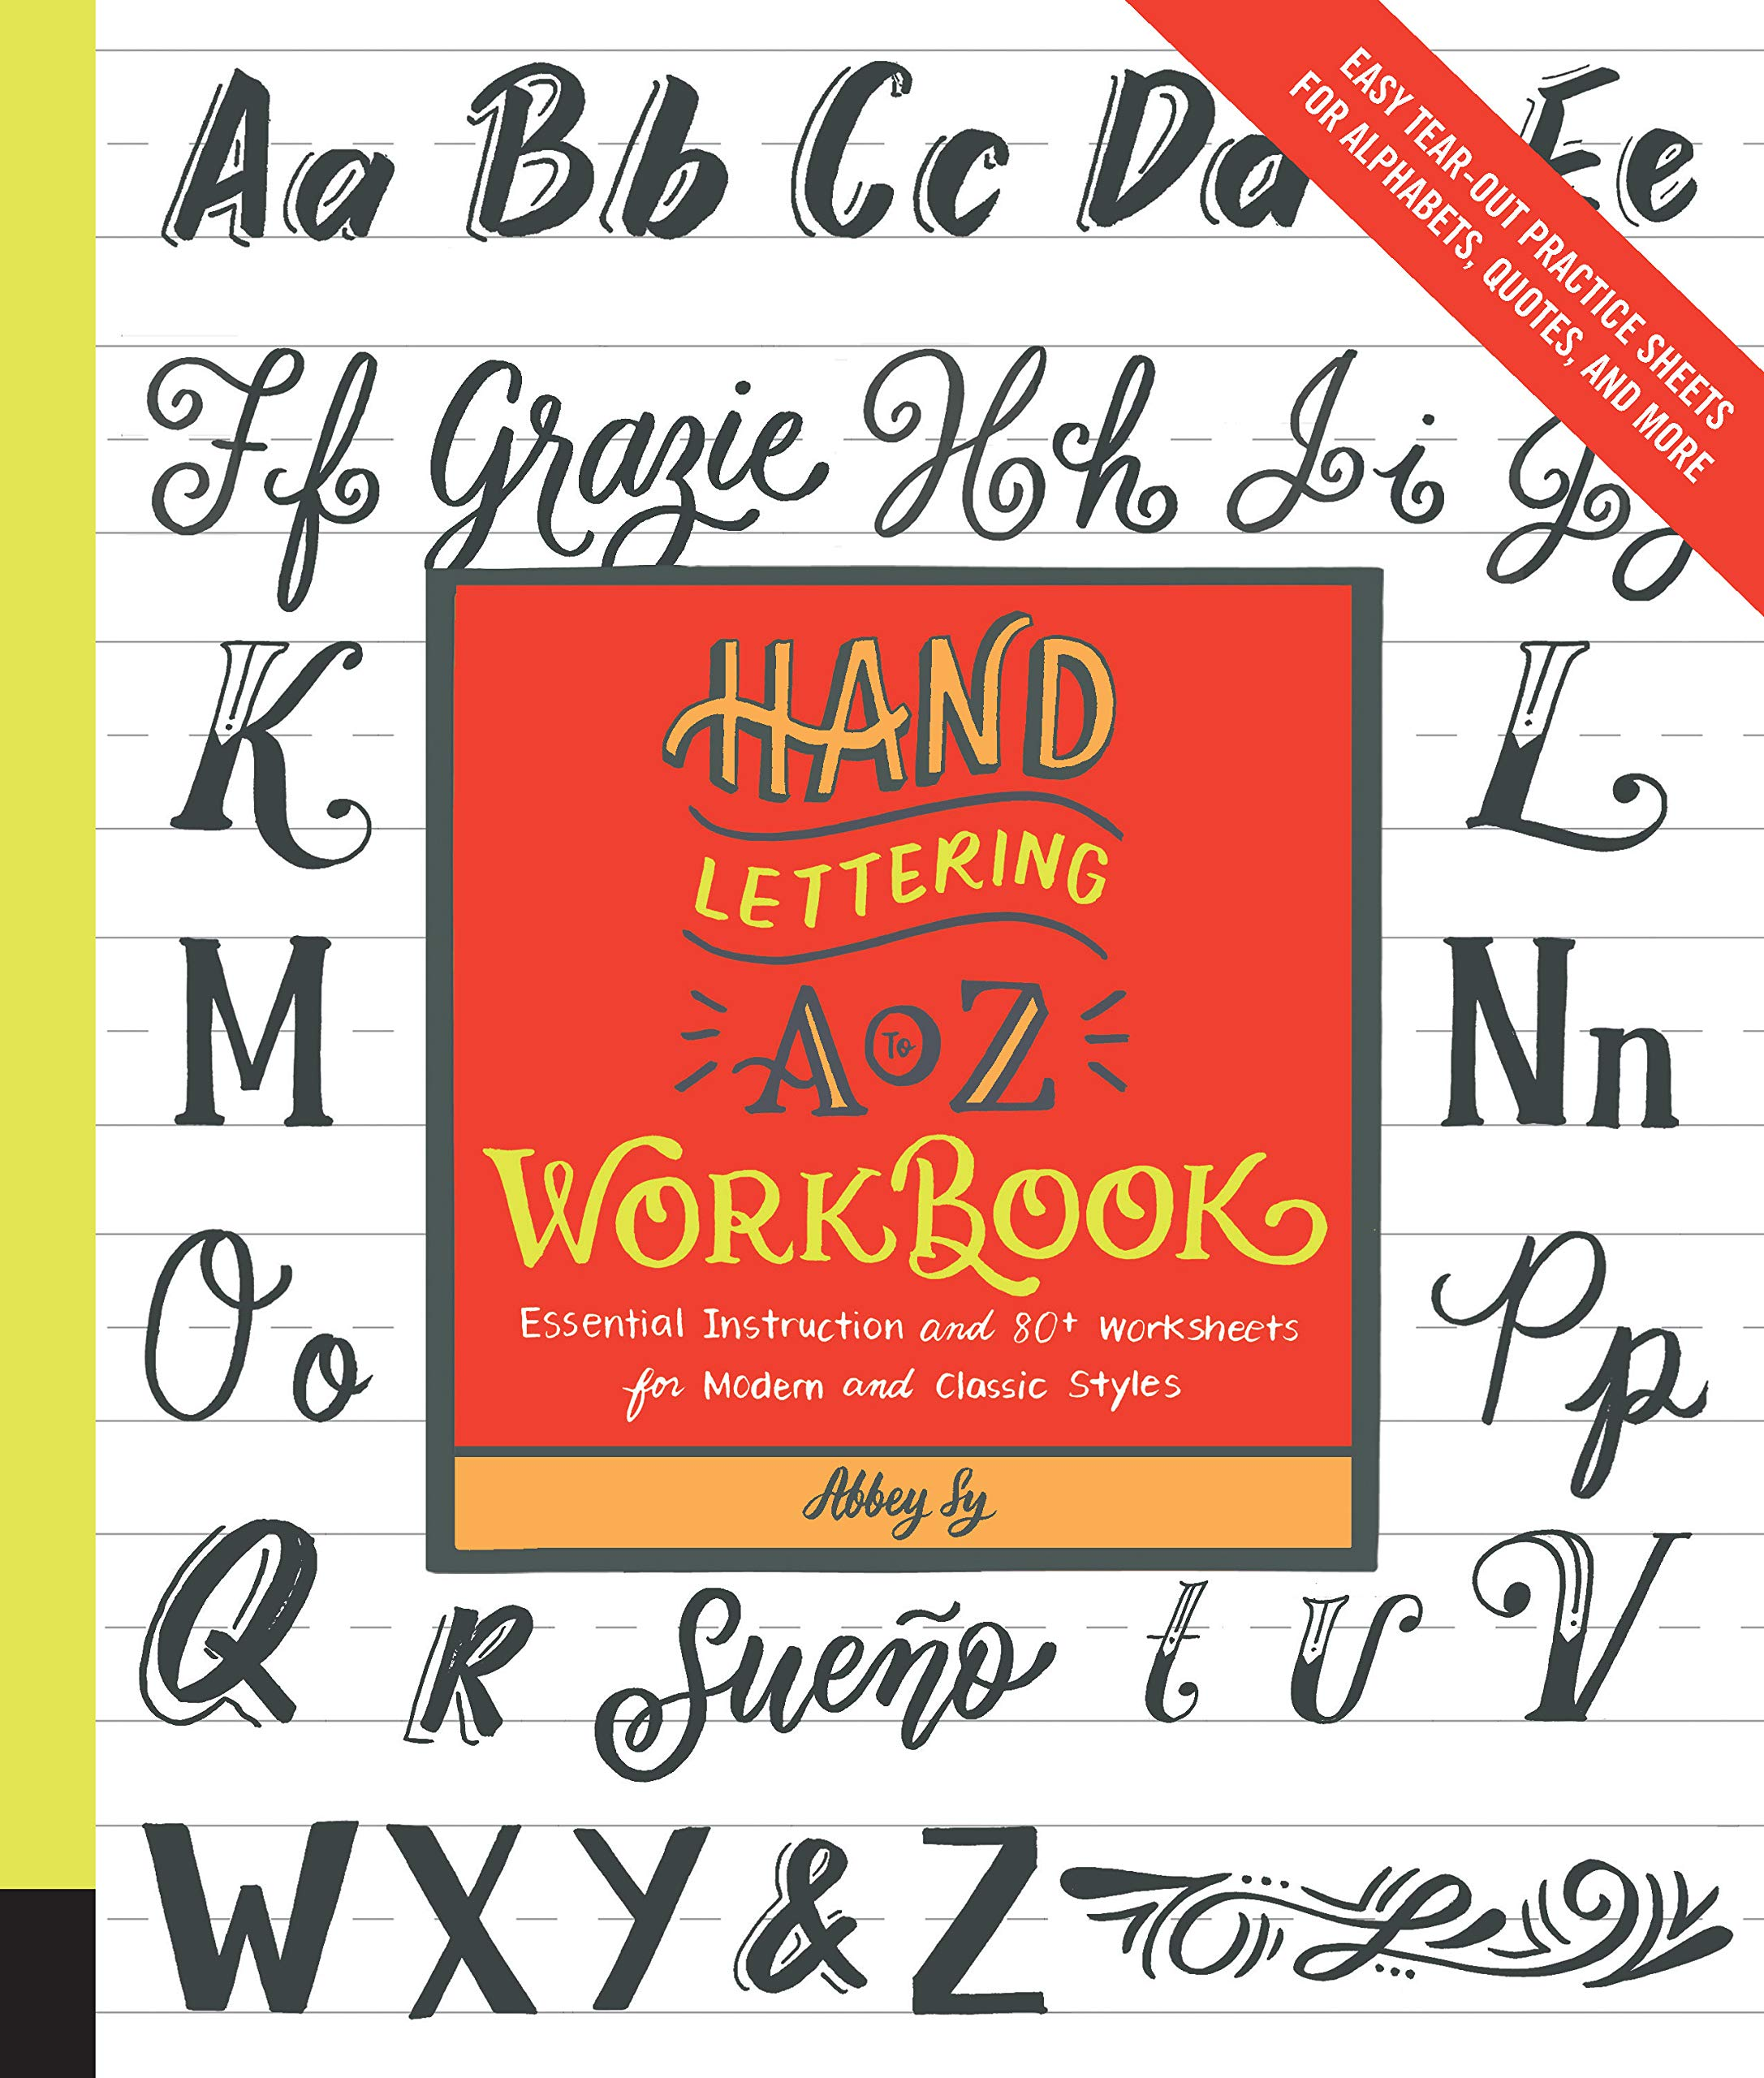 Amazon.com: Hand Lettering A to Z Workbook: Essential ...